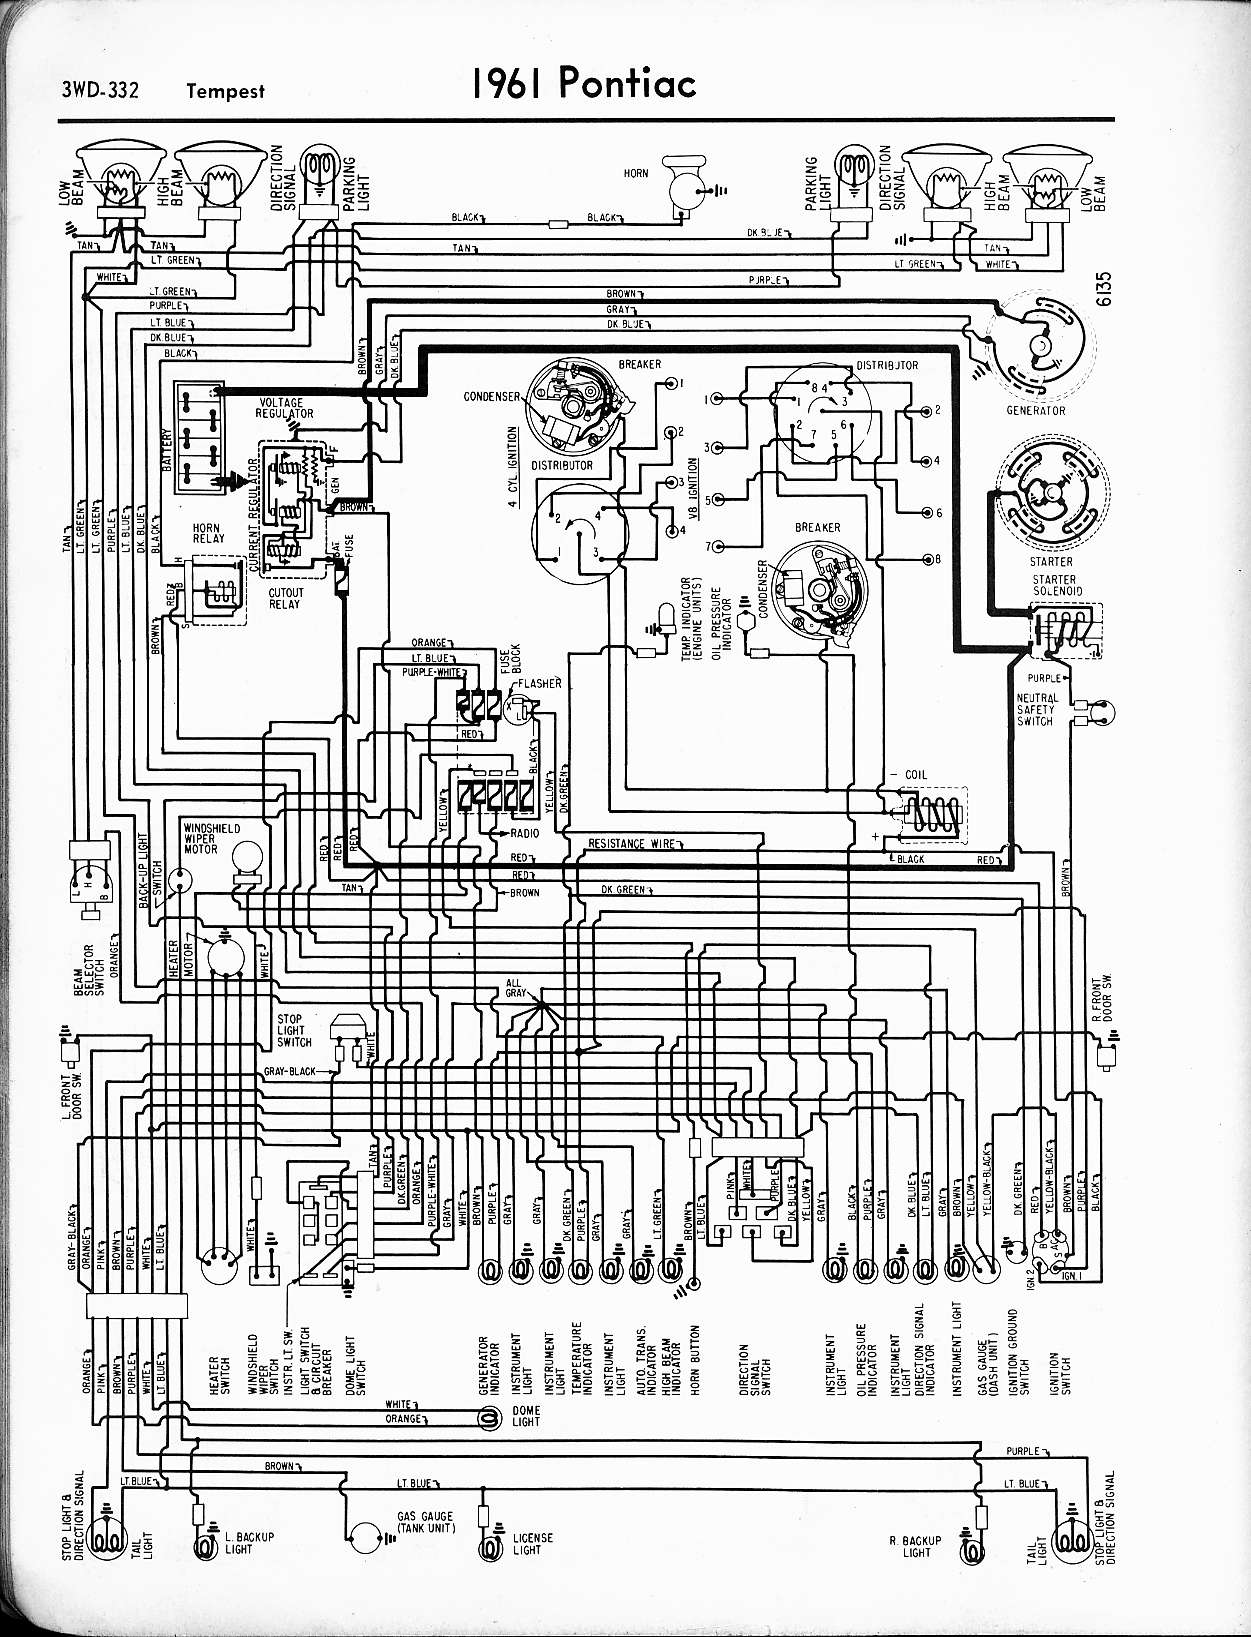 1966 gto dash wiring harness wiring diagram todays 1961 corvair wiring diagram 1966 gto dash wiring harness completed wiring diagrams pontiac lemans dash 1966 gto dash wiring harness